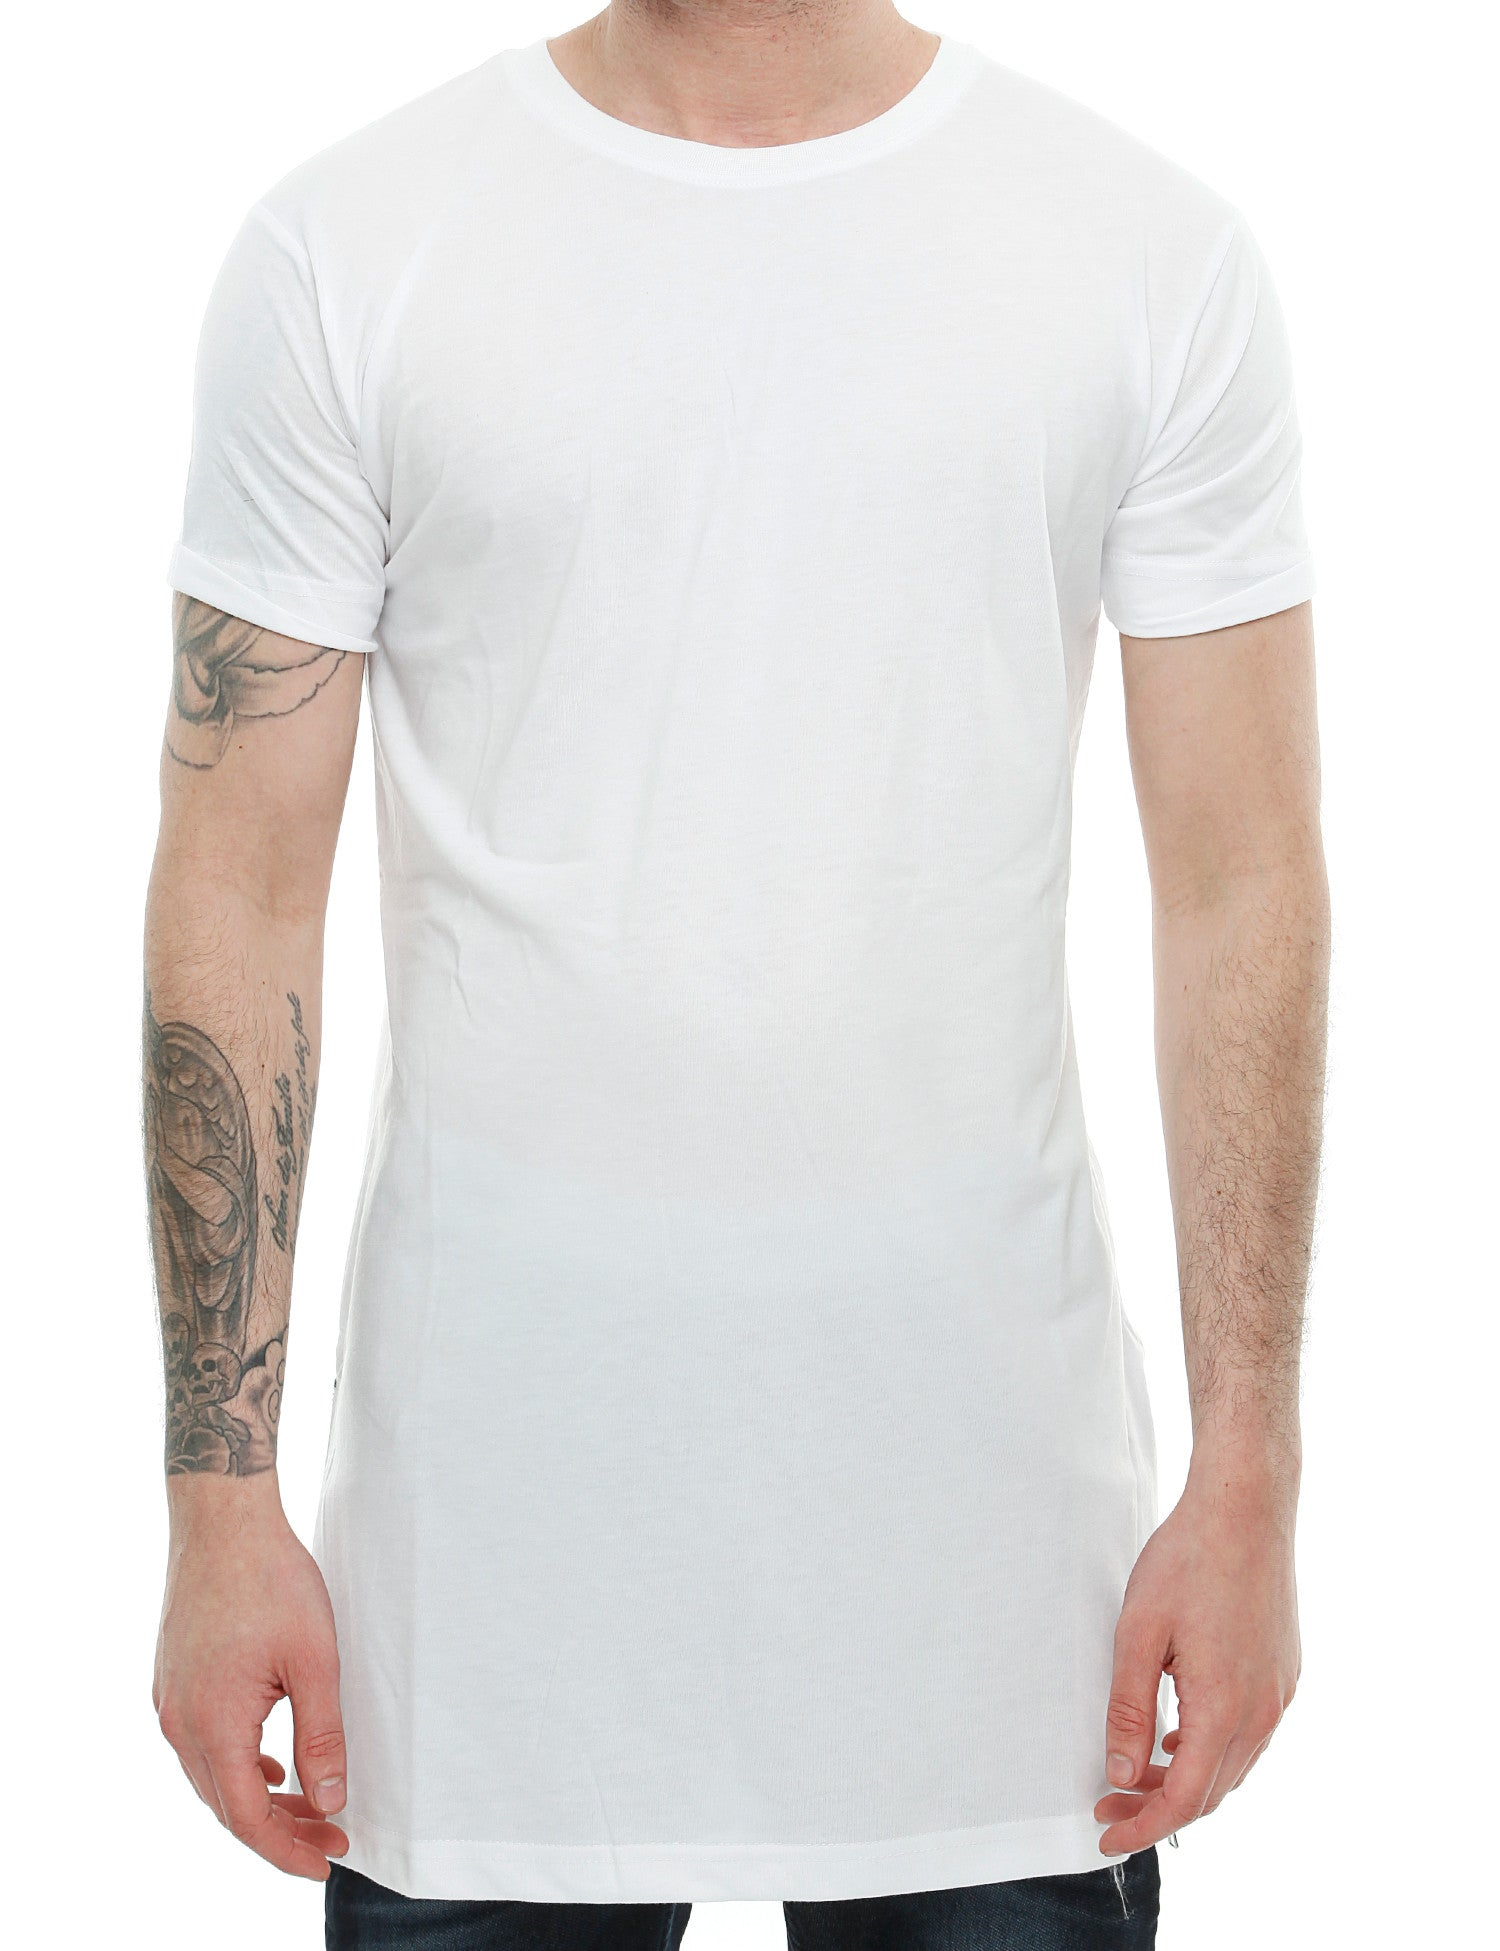 Townz Long Tee with Zipper TNZ16-011 White